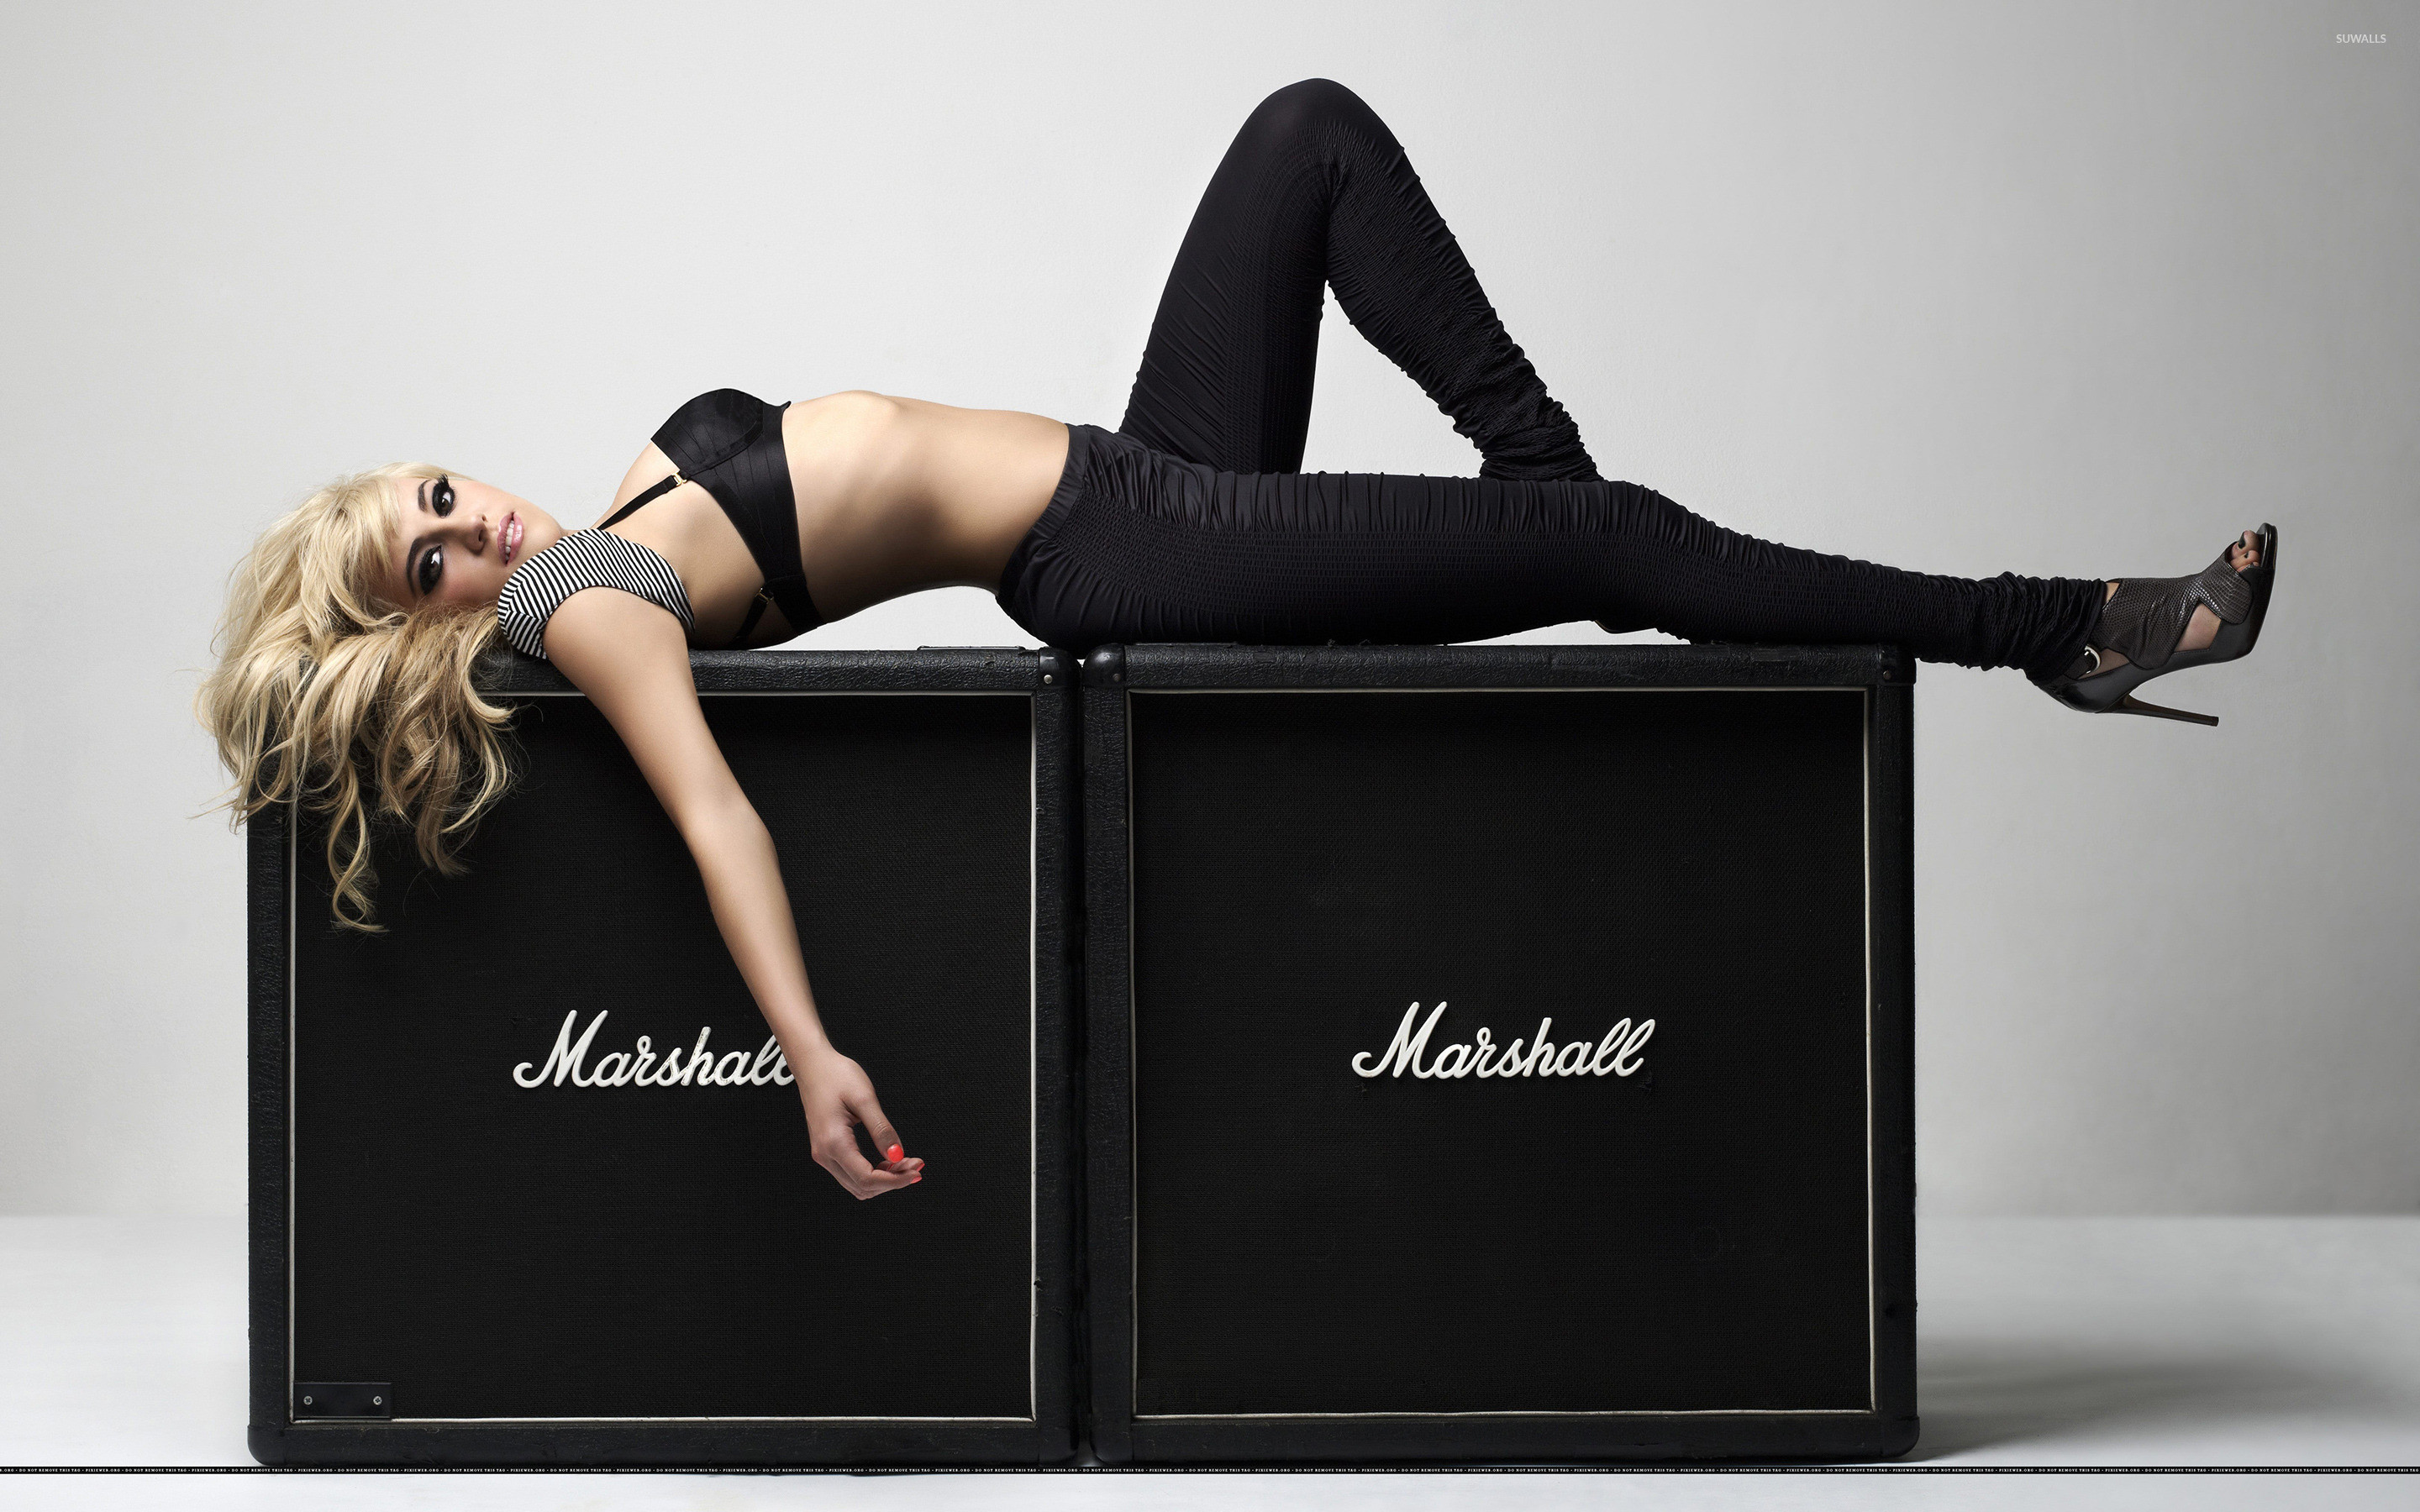 Marshall Amps Wallpaper | Free | Download